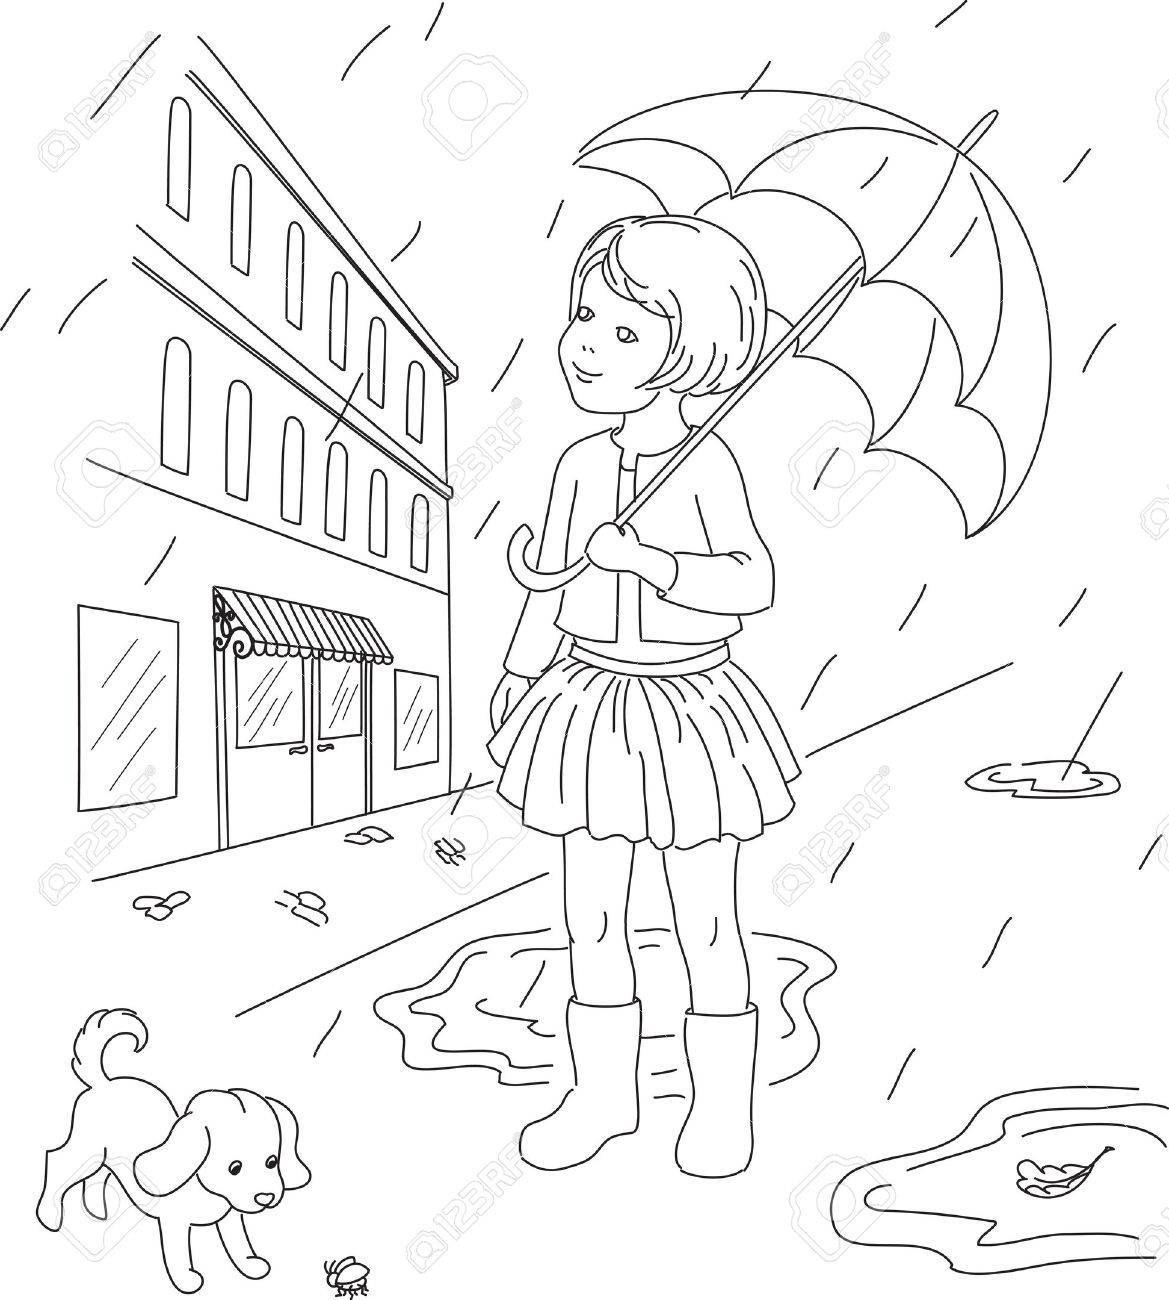 Rainy day clipart black and white 2 » Clipart Portal.